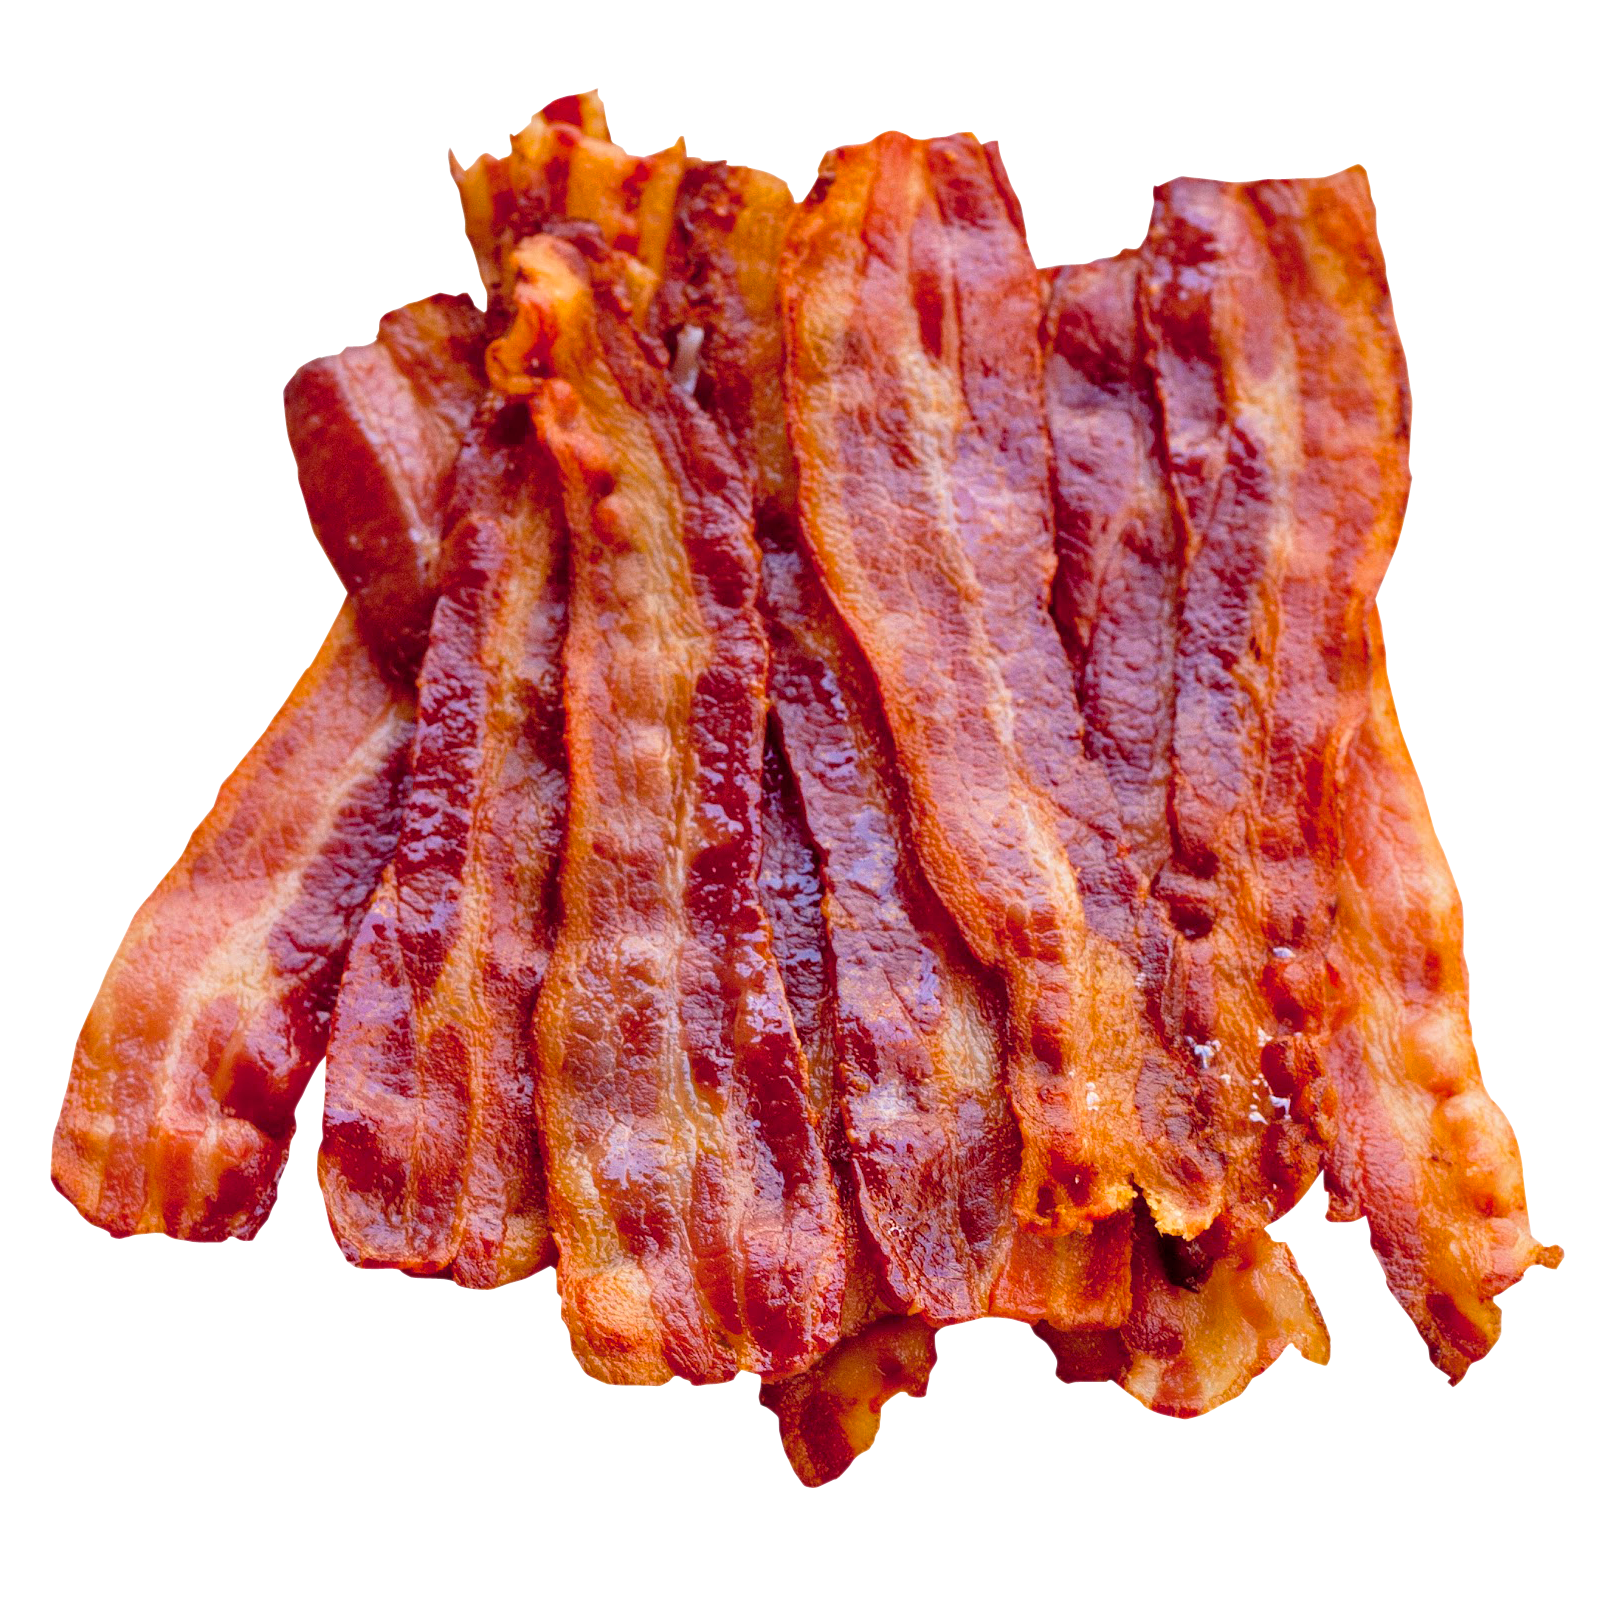 Png image purepng free. Bacon clipart pink food